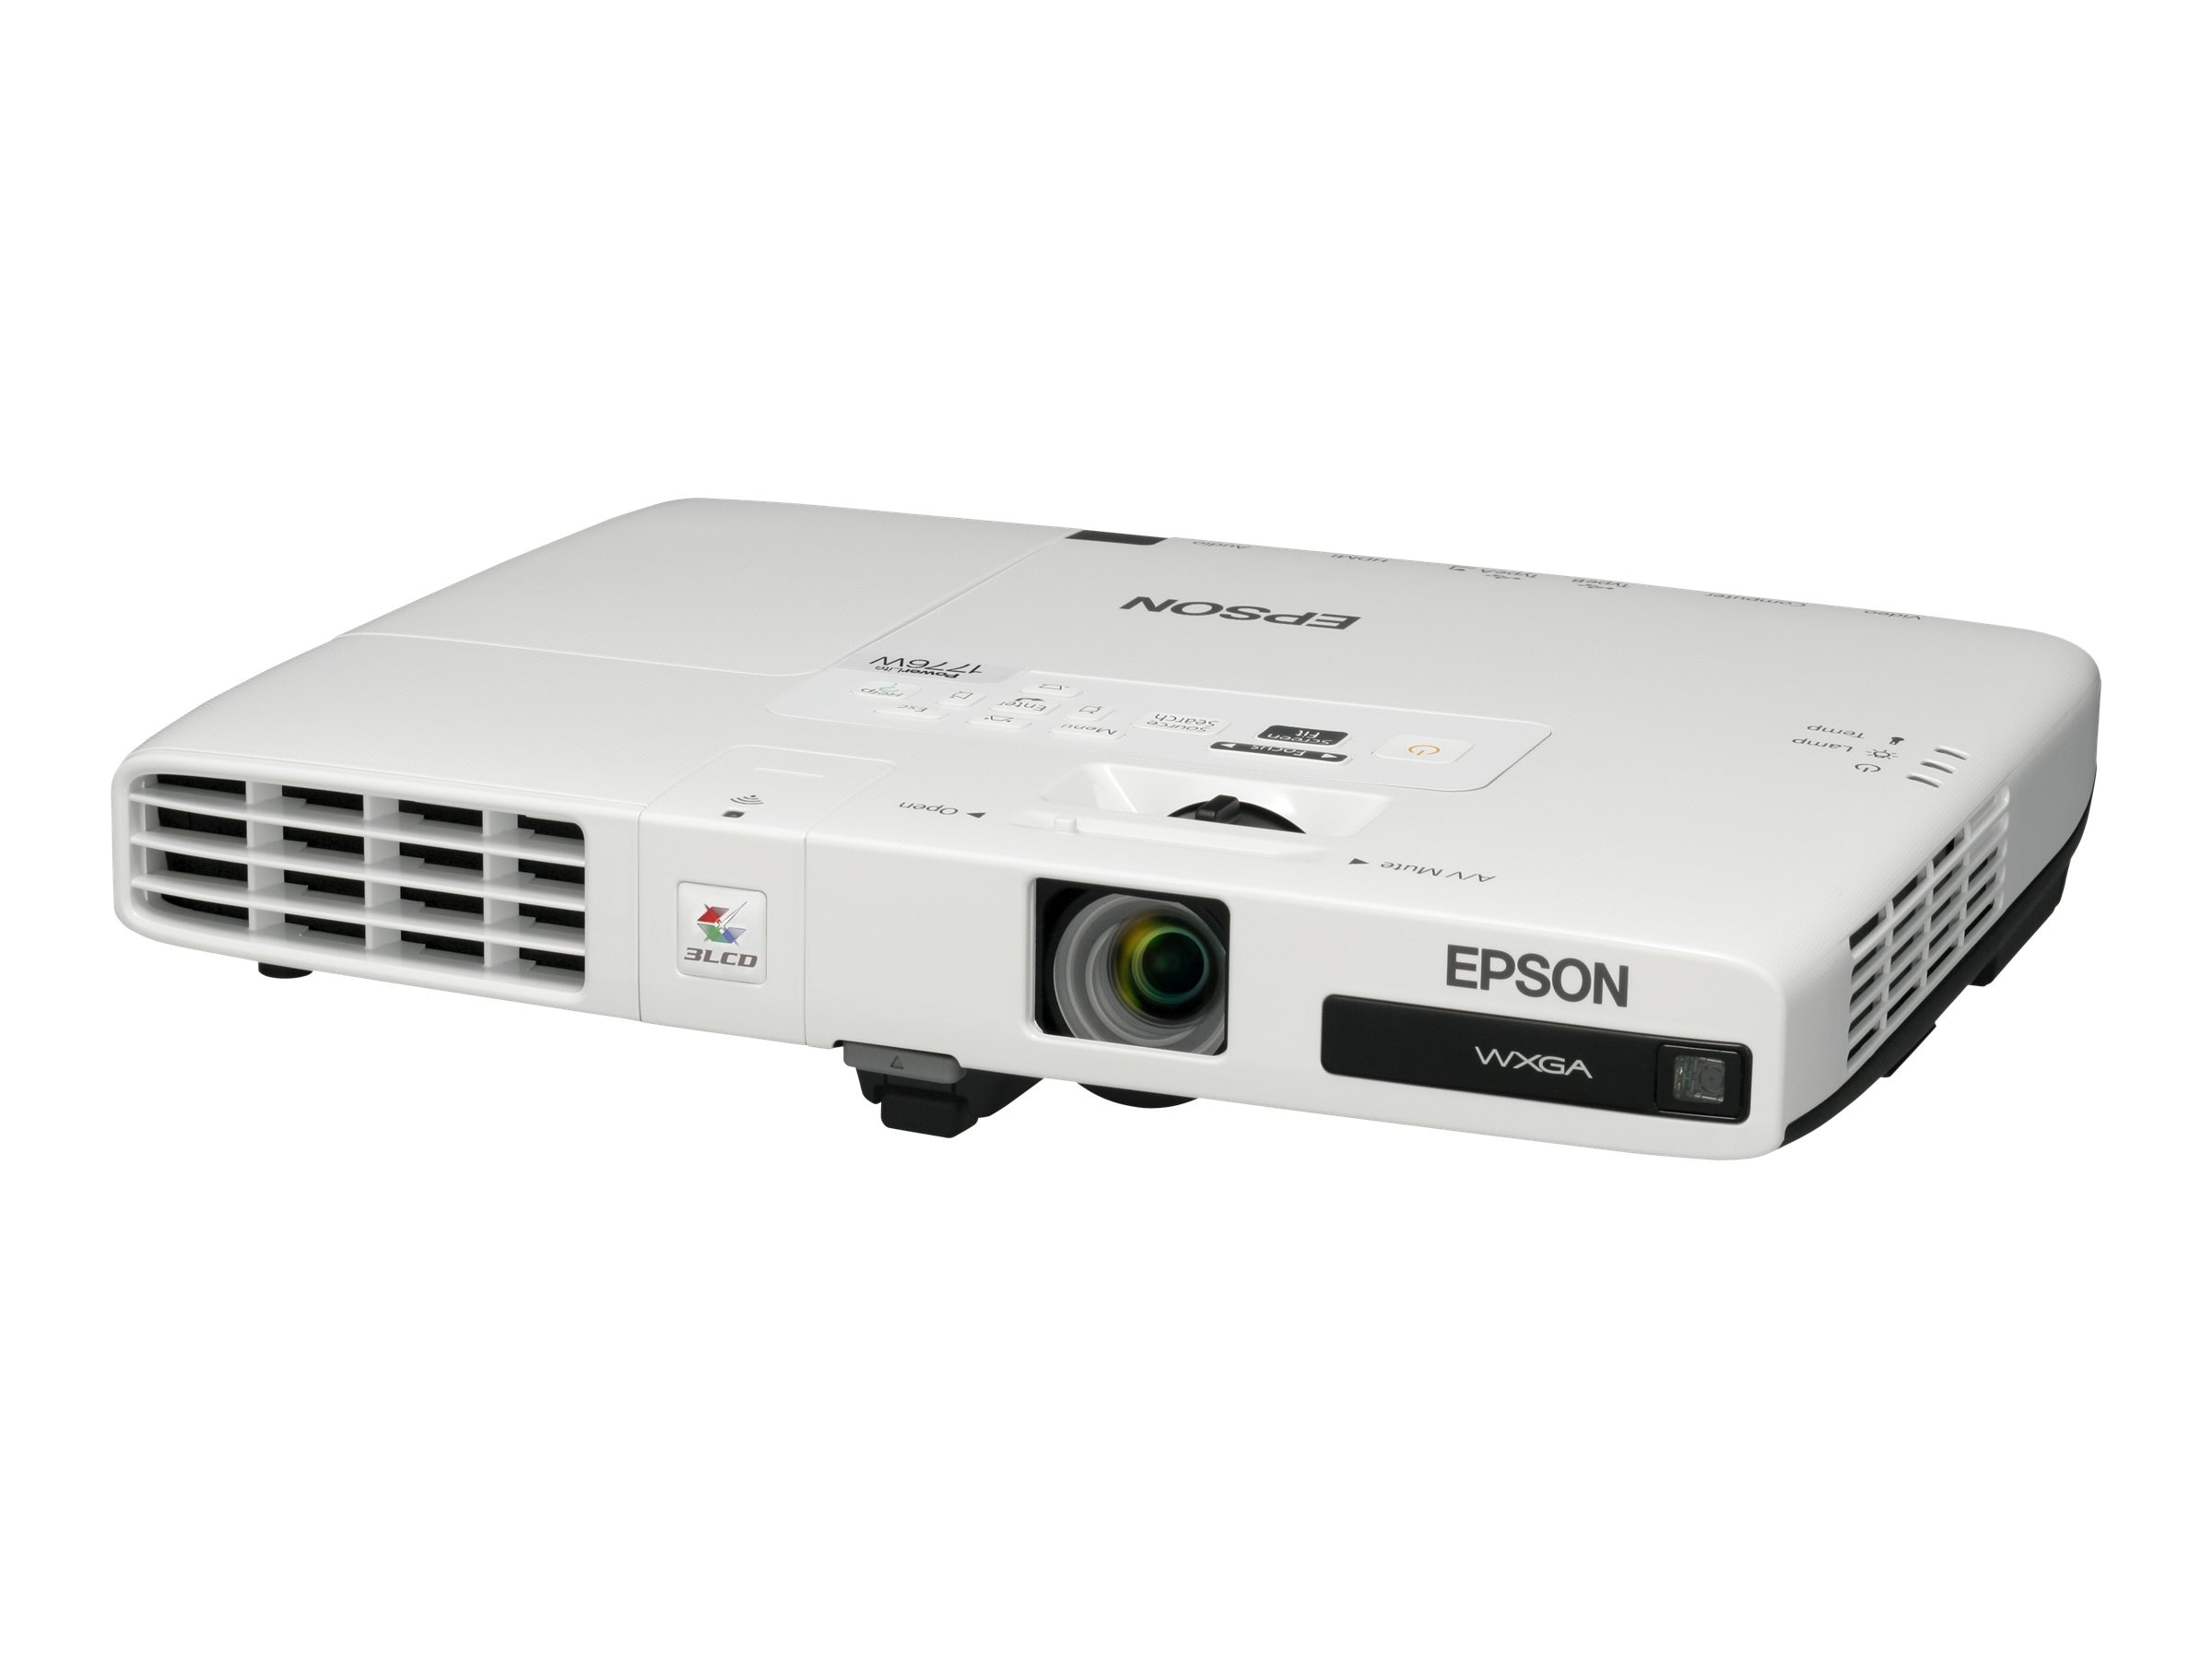 Epson PowerLite 1776W WXGA LCD Projector, 3000 Lumens, White, V11H476020, 14035255, Projectors